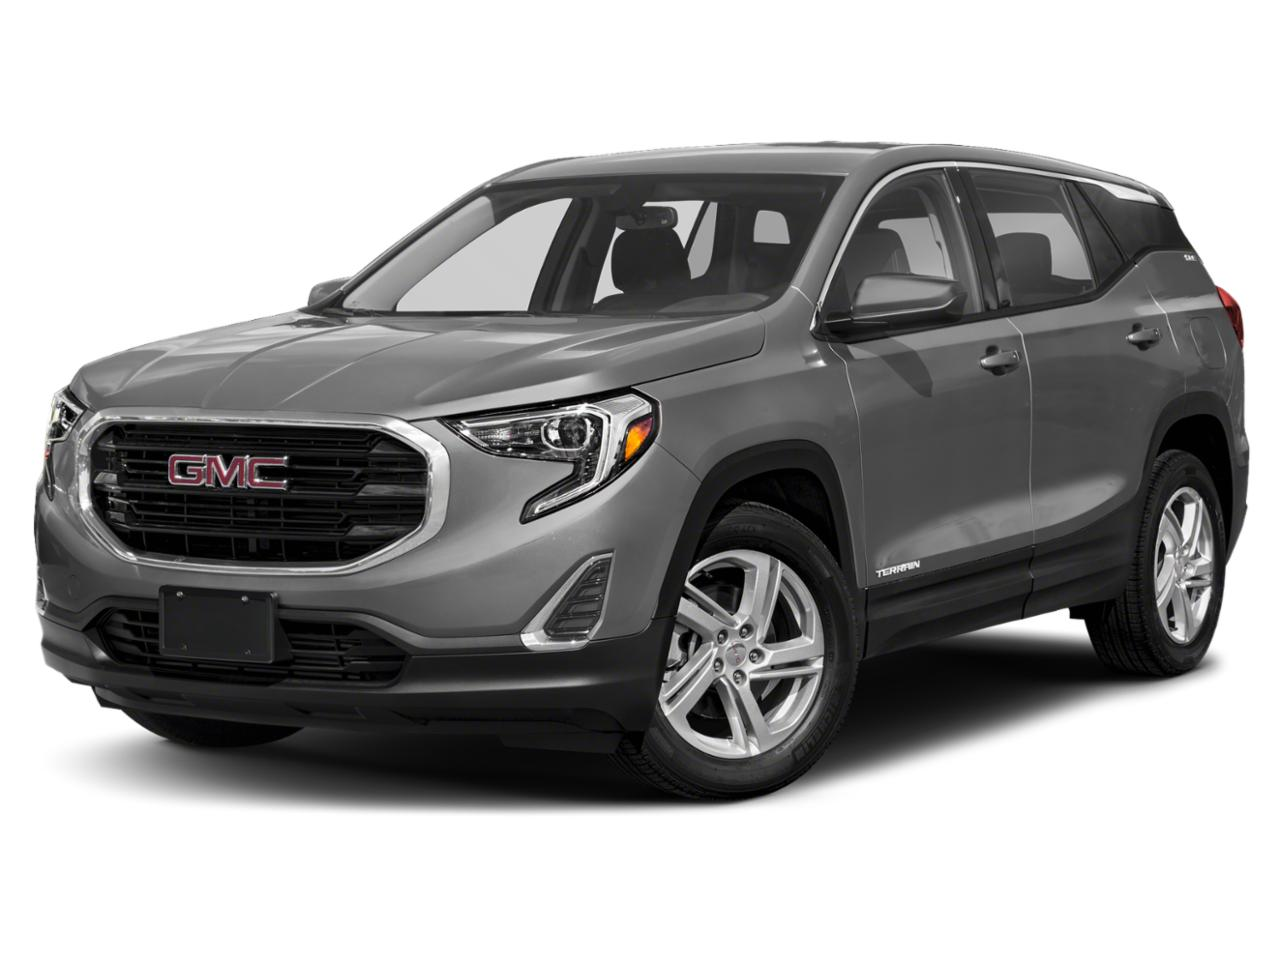 2018 GMC Terrain Vehicle Photo in San Antonio, TX 78230